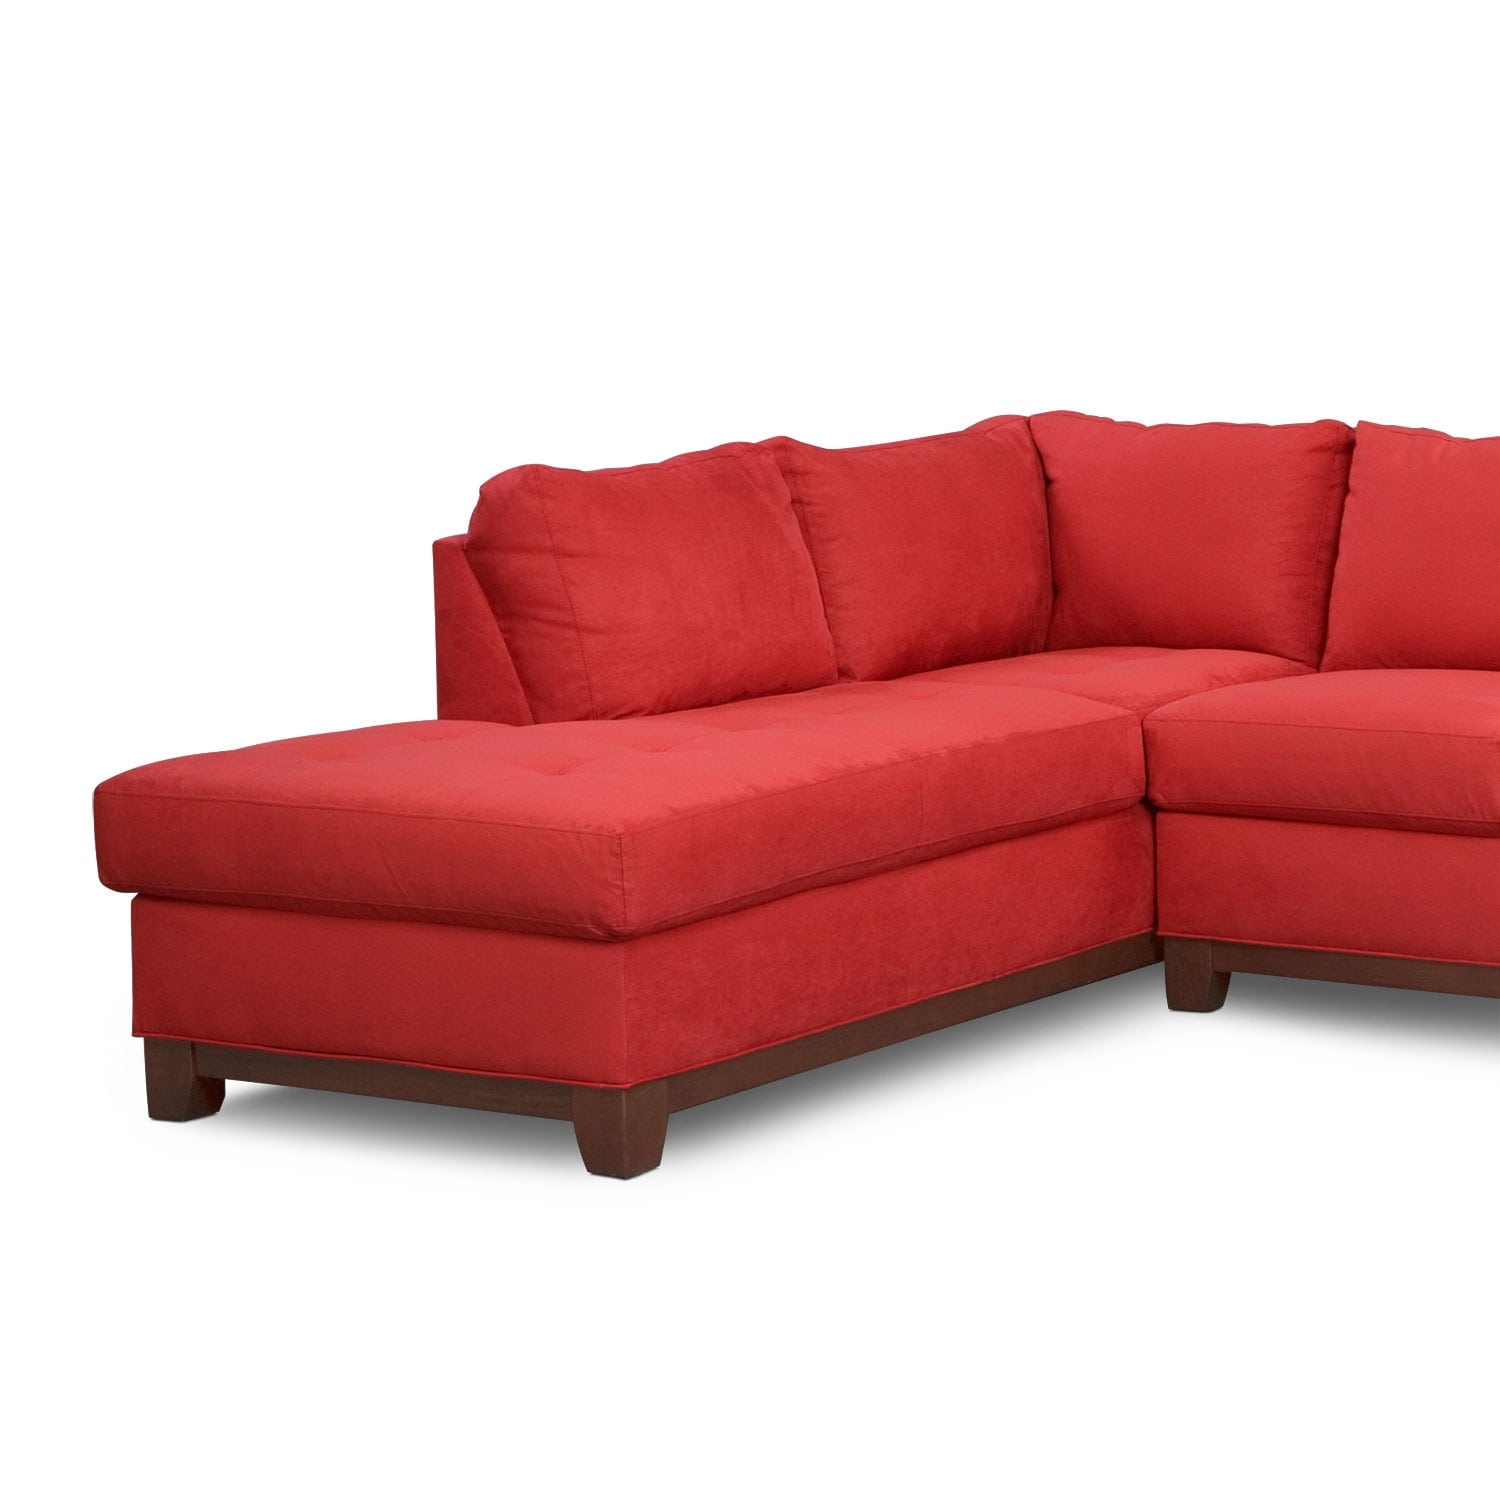 soho piece sectional with leftfacing chaise  red  value city  - click to change image